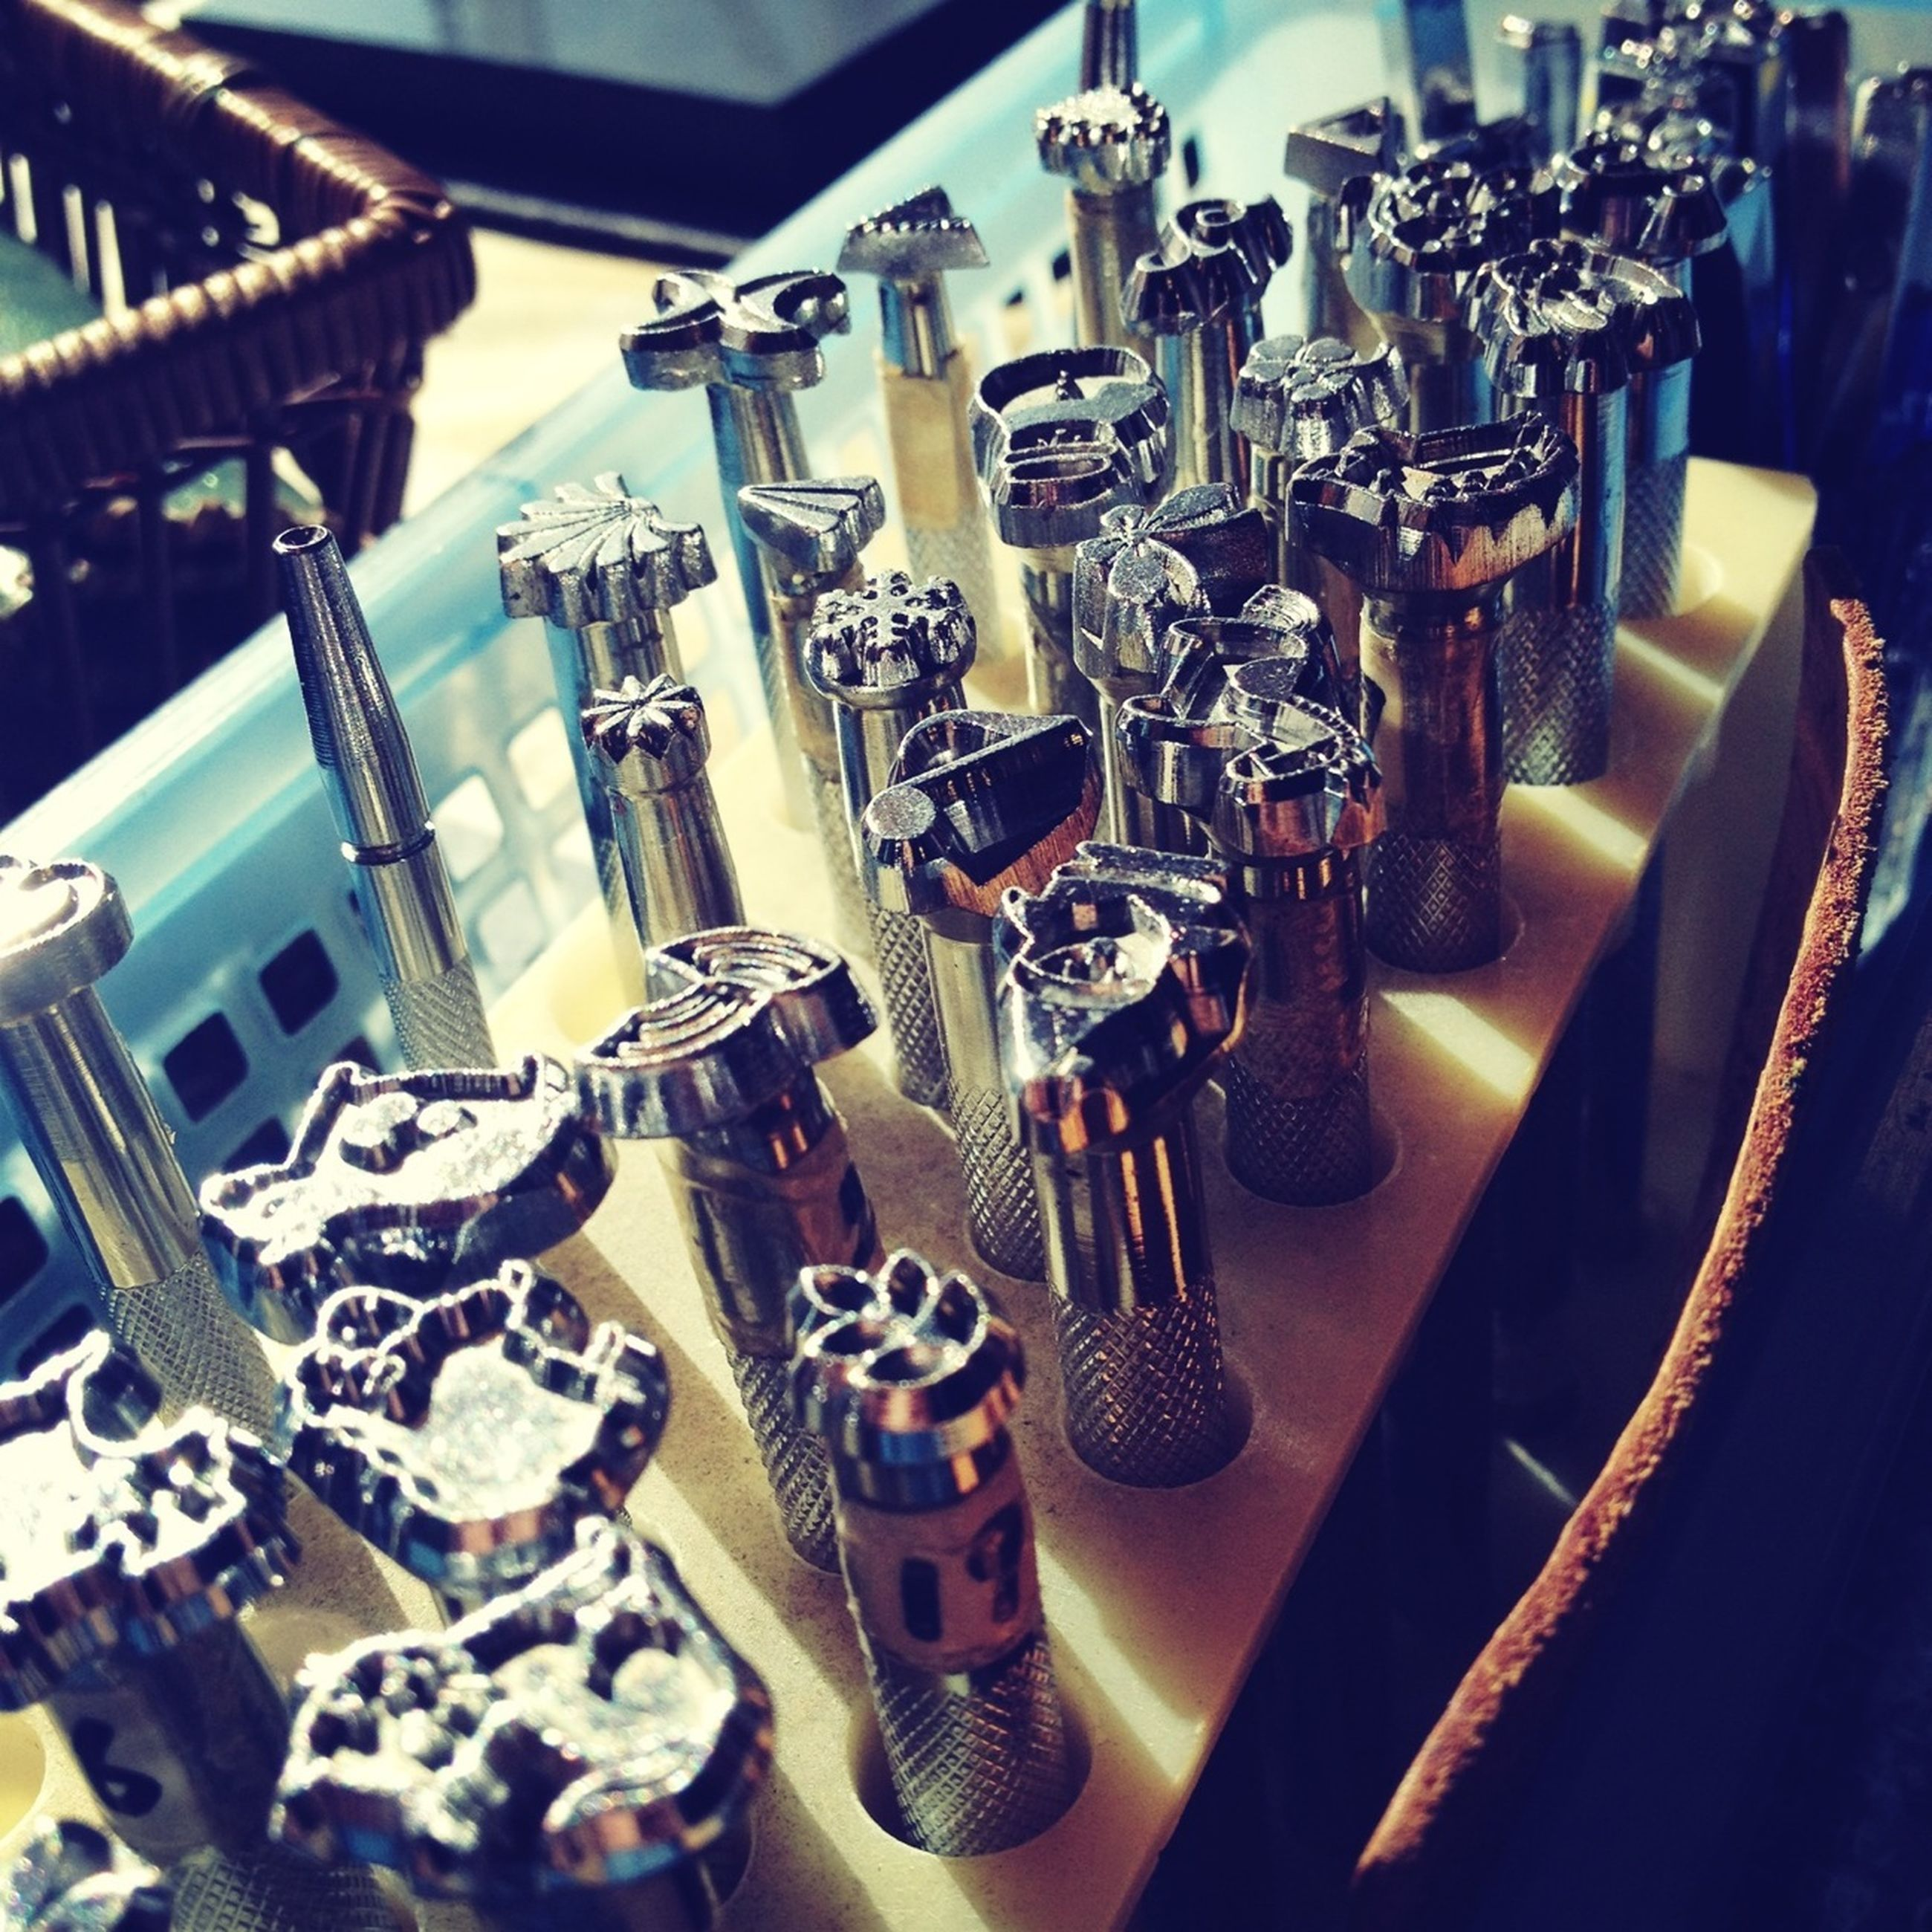 indoors, large group of objects, in a row, arrangement, abundance, still life, order, repetition, variation, close-up, hanging, choice, table, no people, metal, high angle view, arts culture and entertainment, side by side, music, luxury